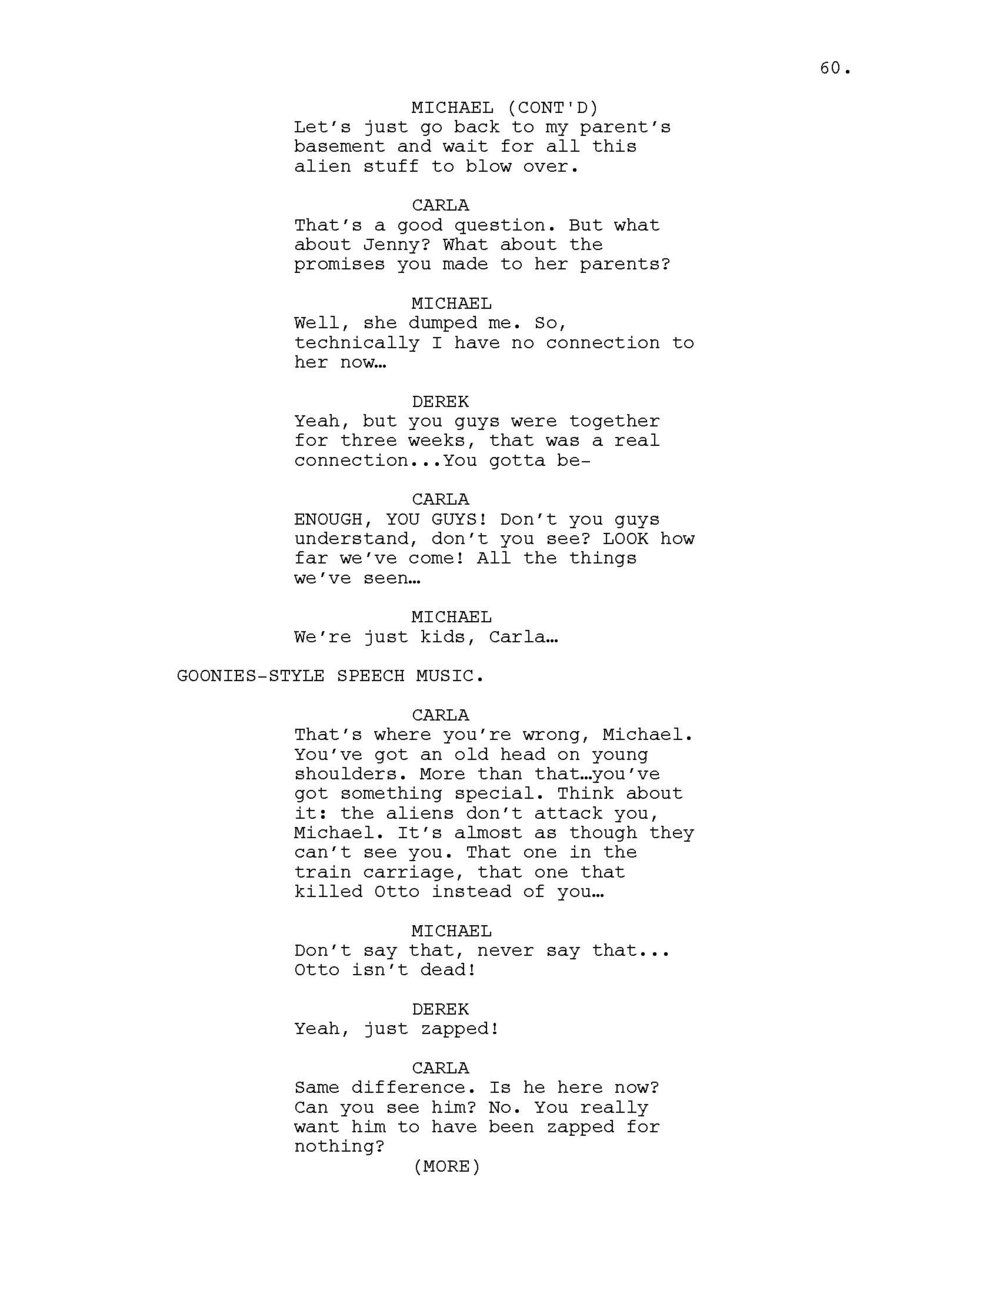 INVISIBLE WORLD SCRIPT_Page_061.jpg